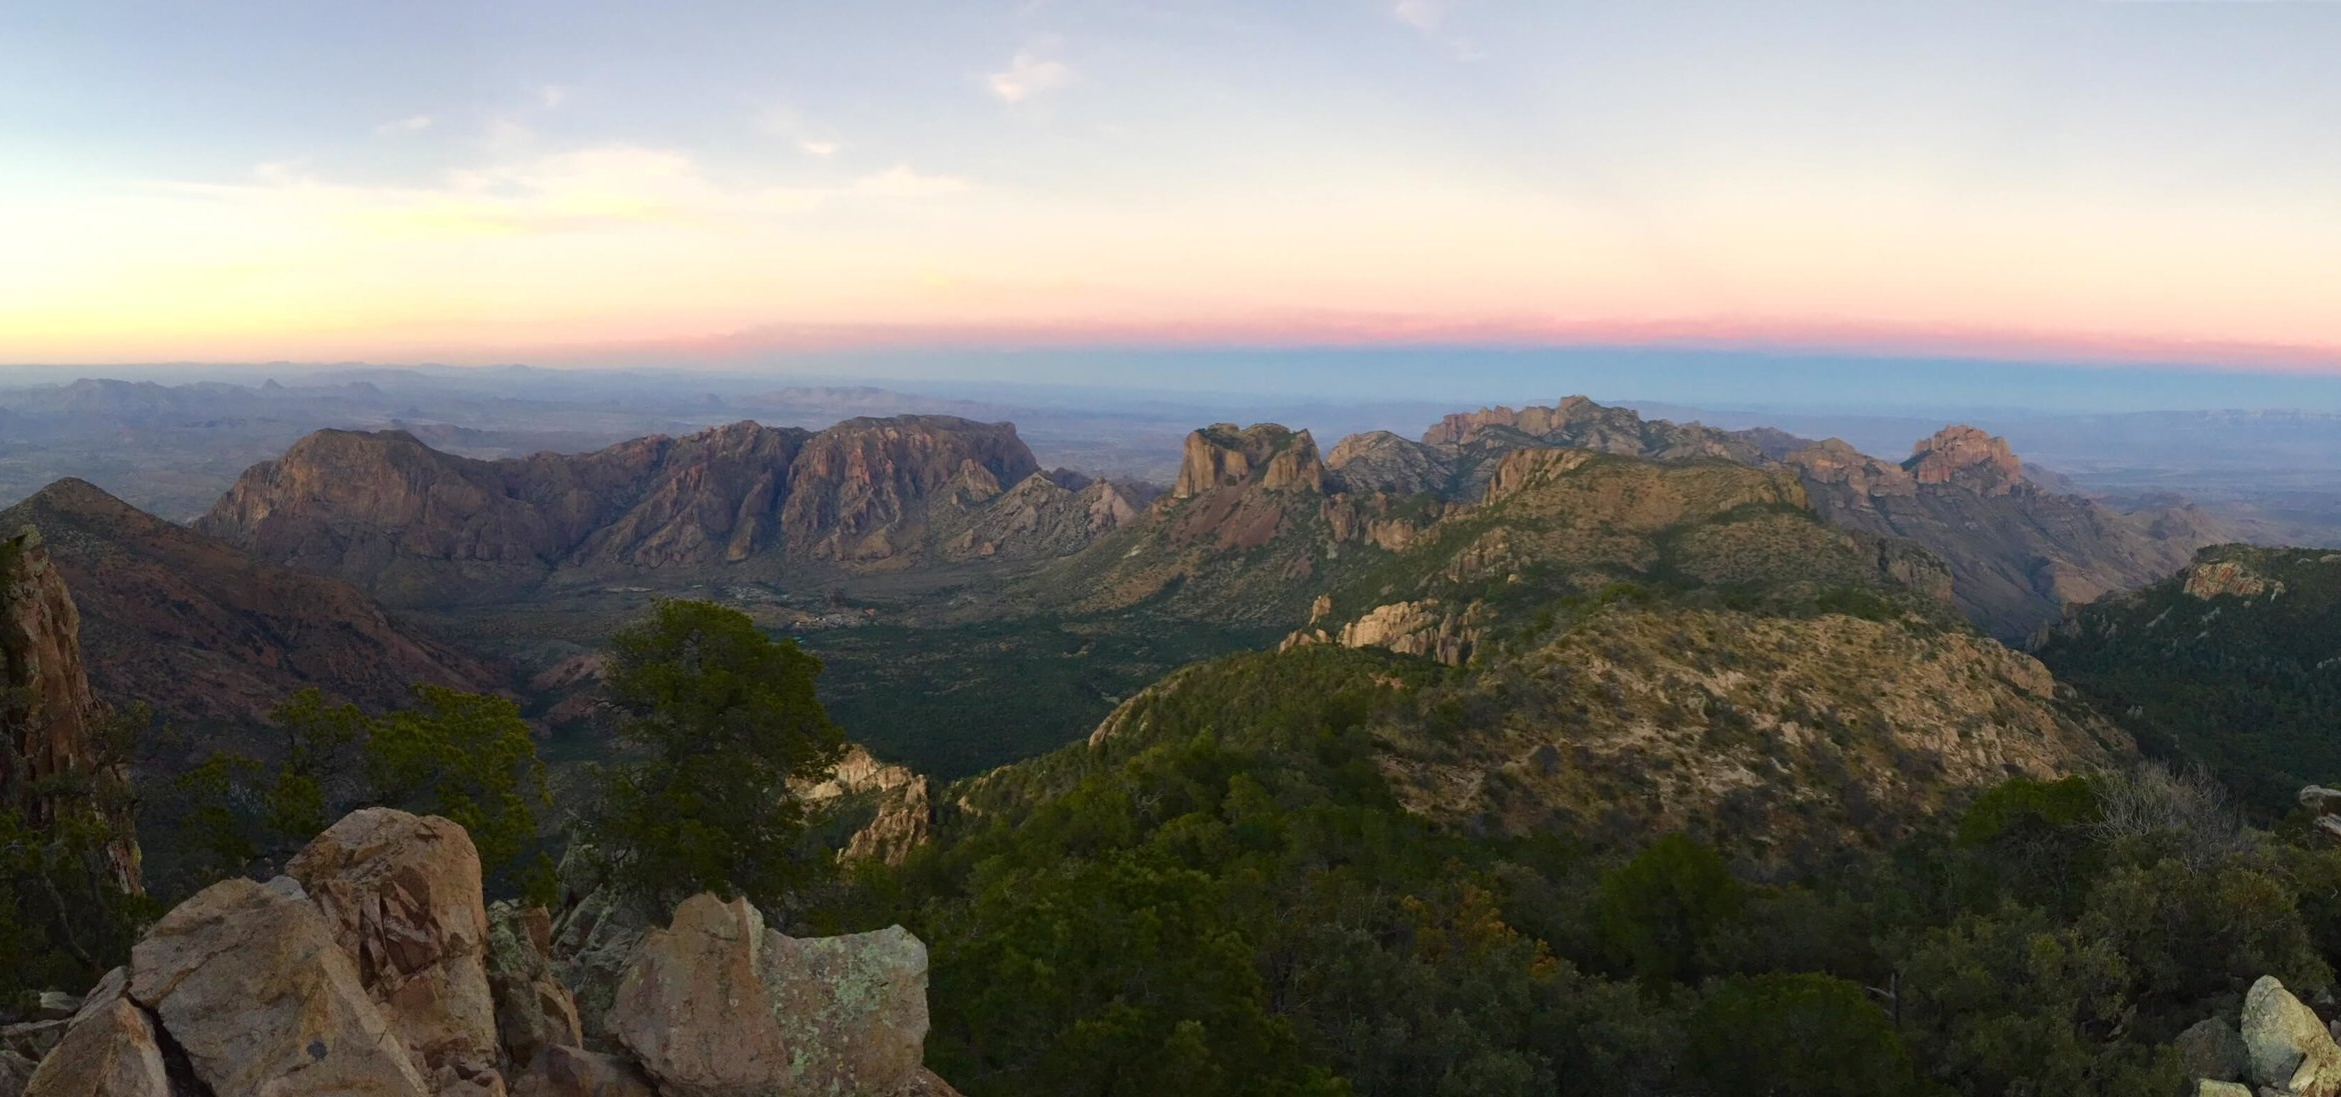 View from Emery Peak in Big Bend National Park.